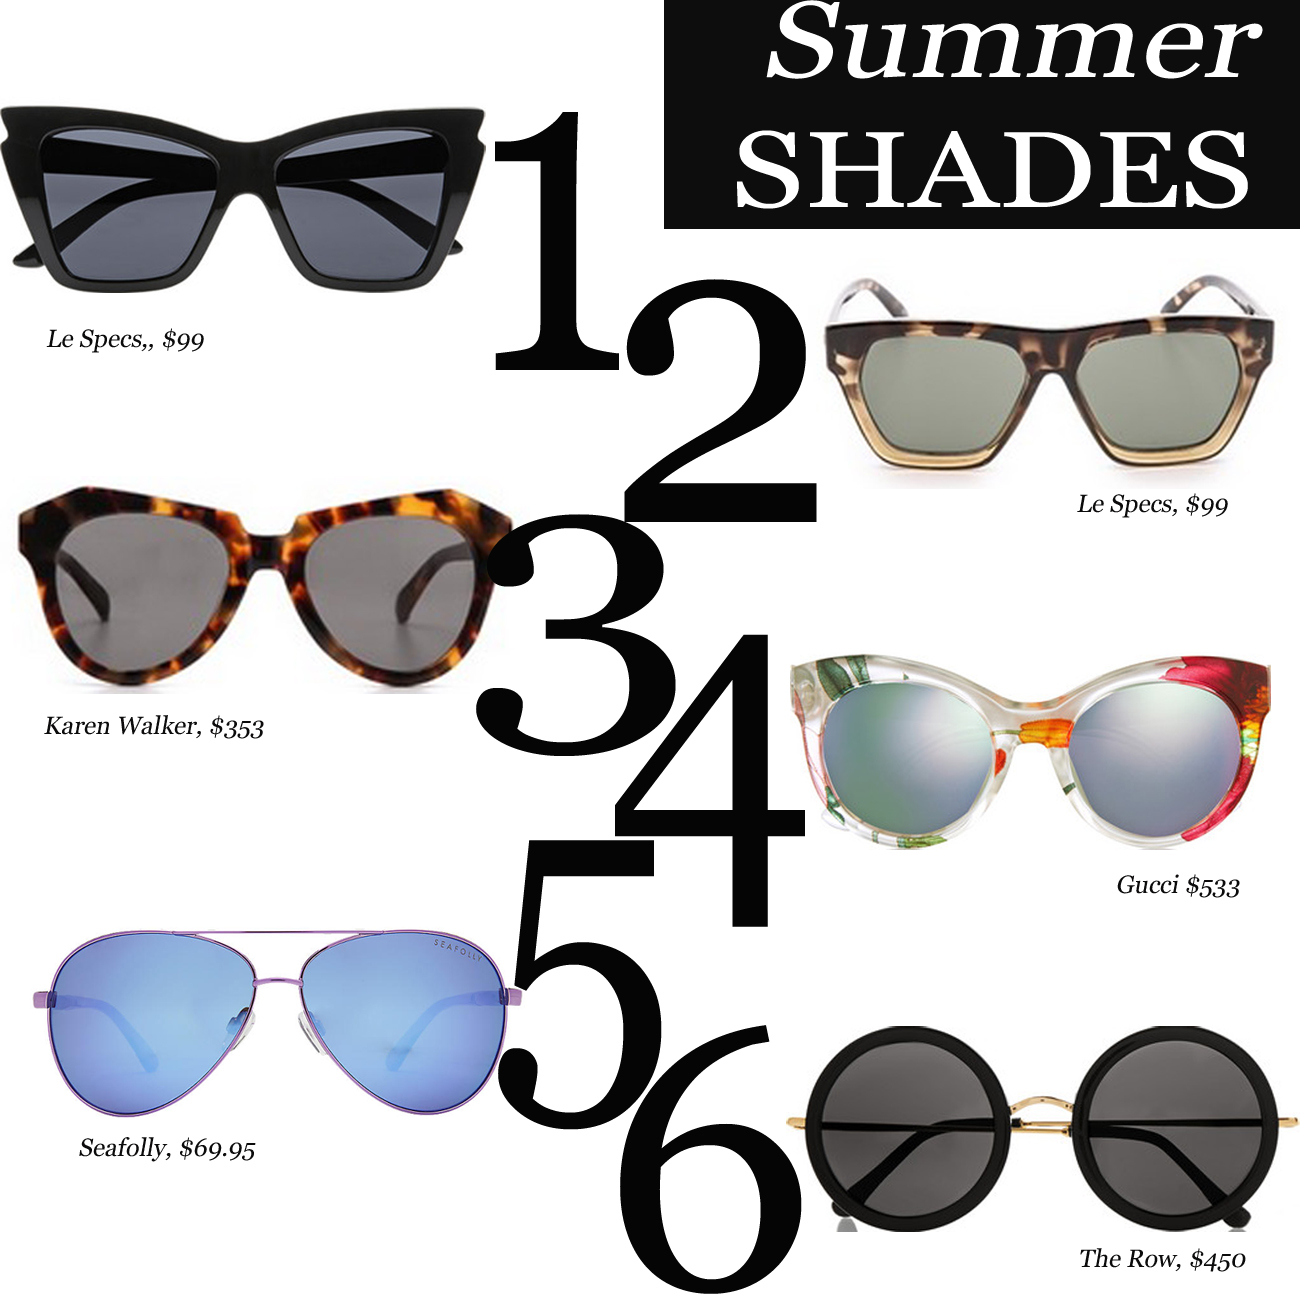 sunglasses-for-summer-2015